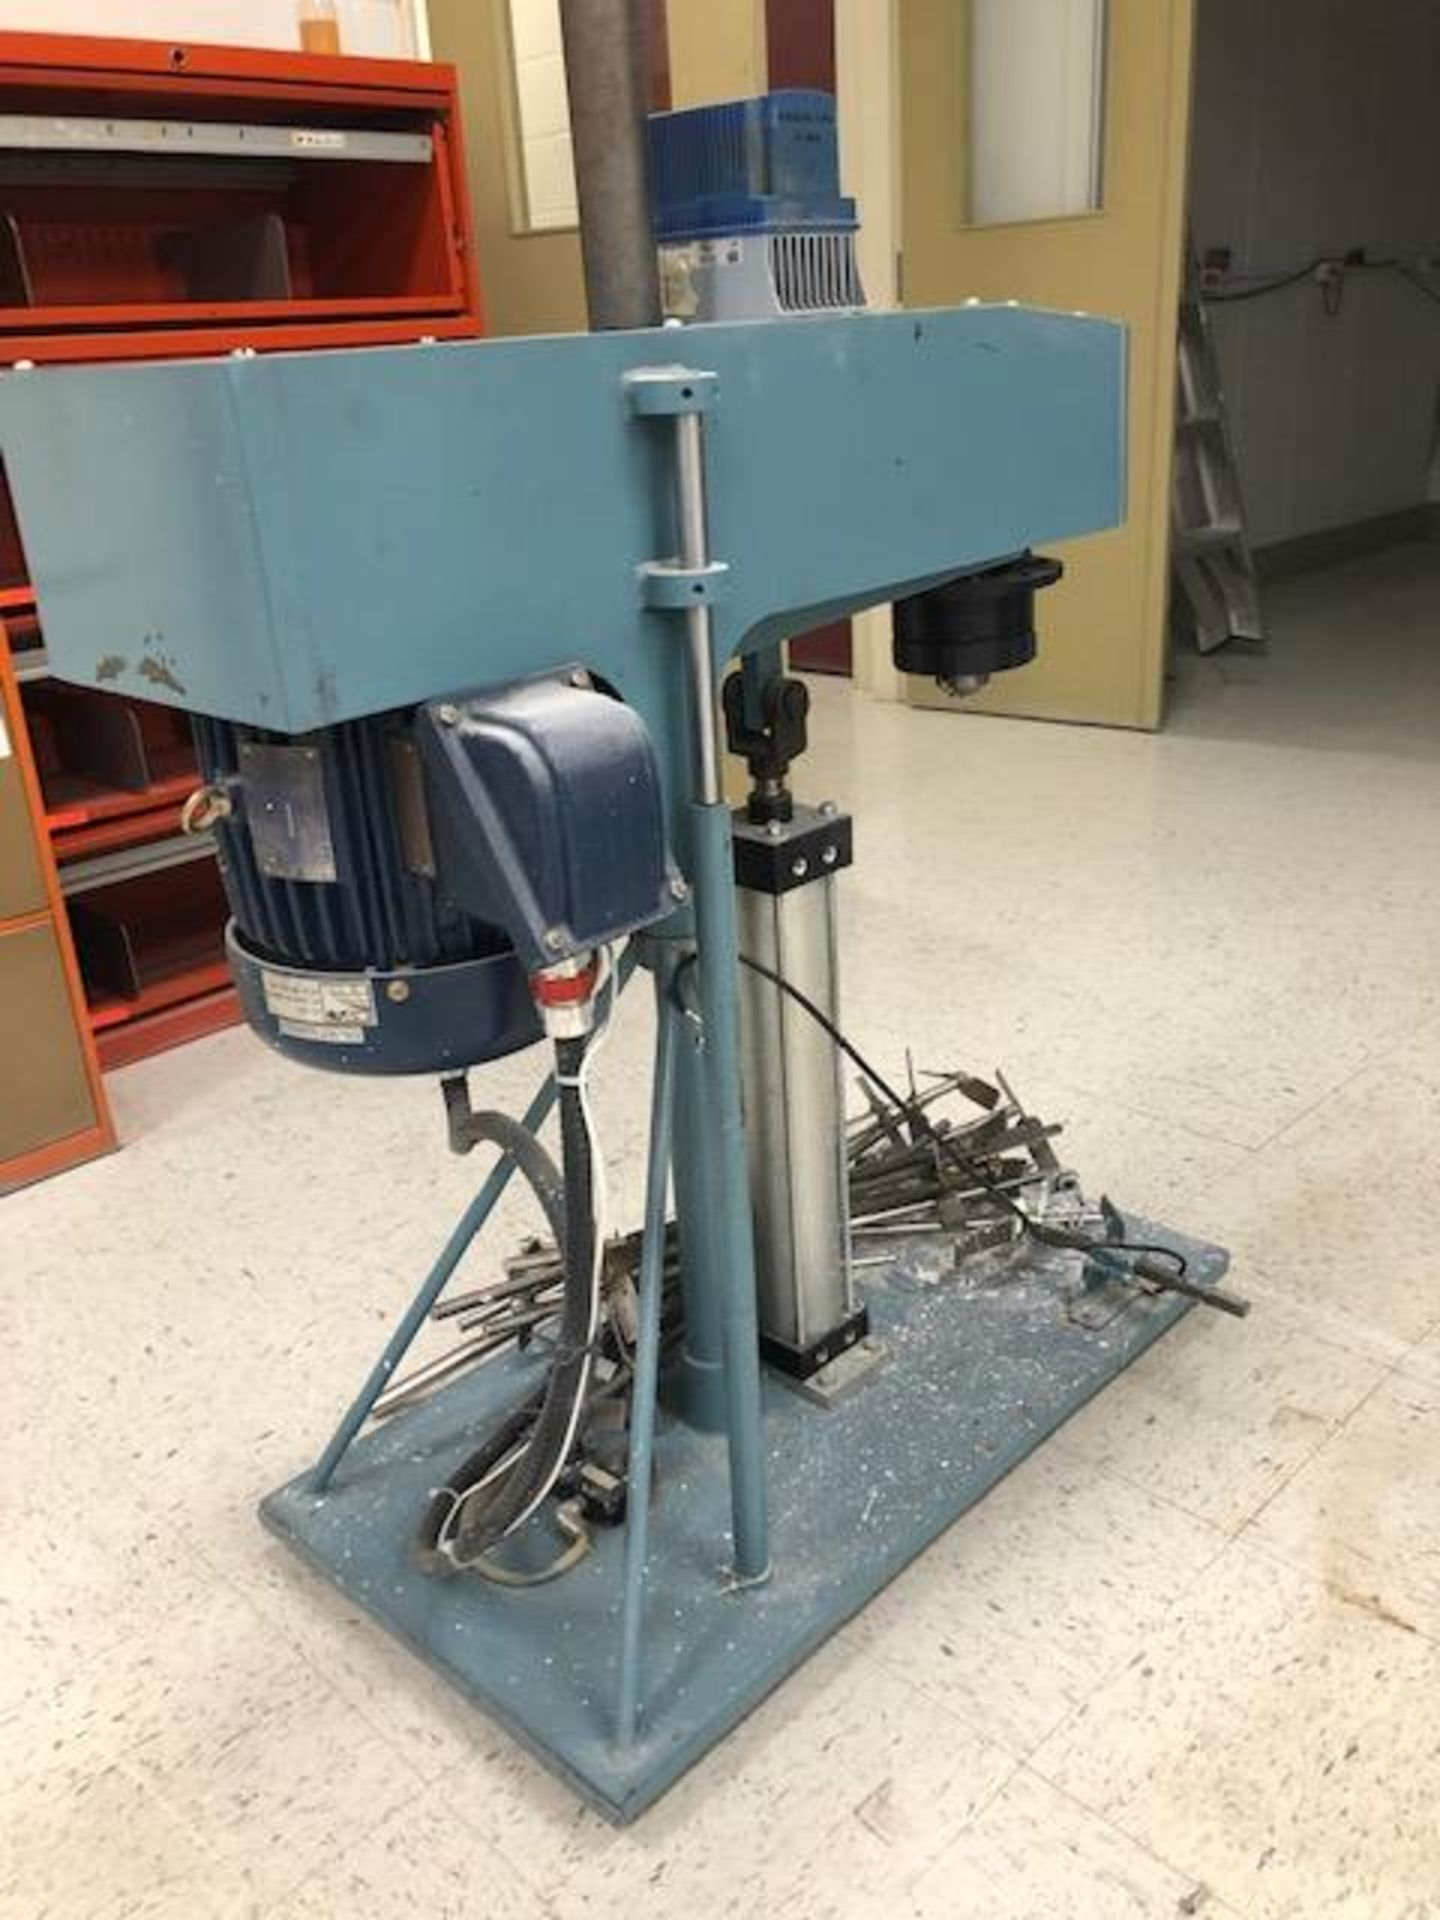 Lot 16 - Slow mixer Ragonia 2hp with drive and 12 impellers